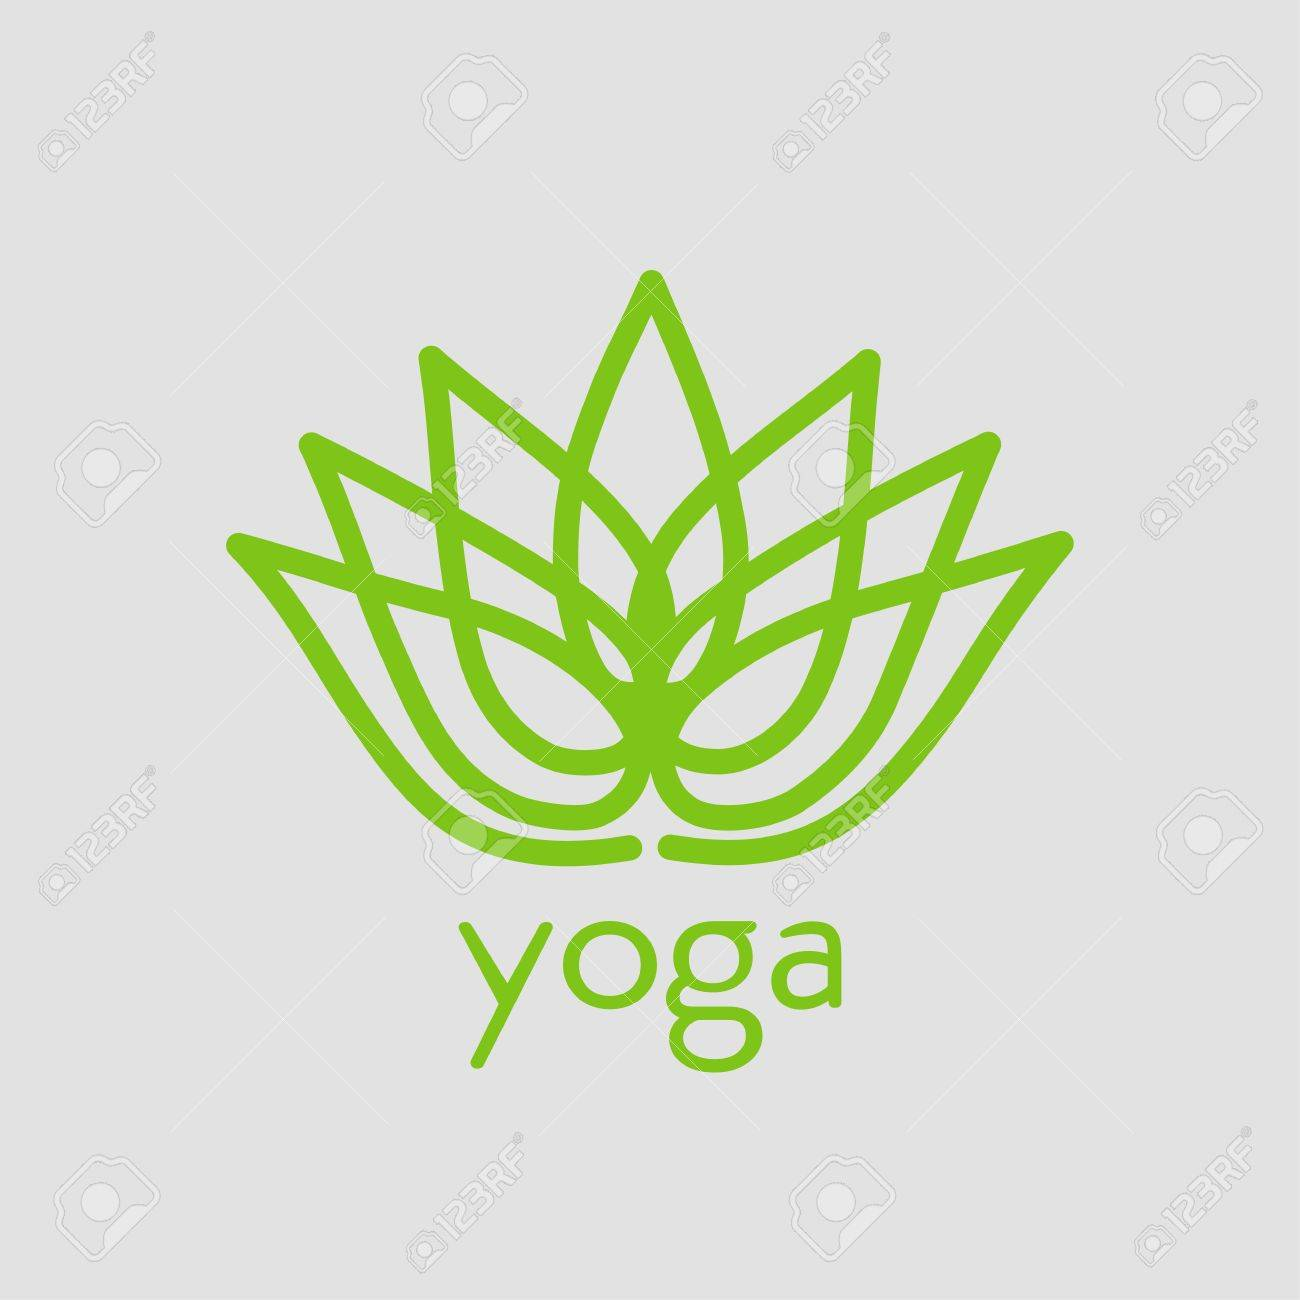 Stylized Lotus Flower Emblem Icon For Yoga Design Royalty Free